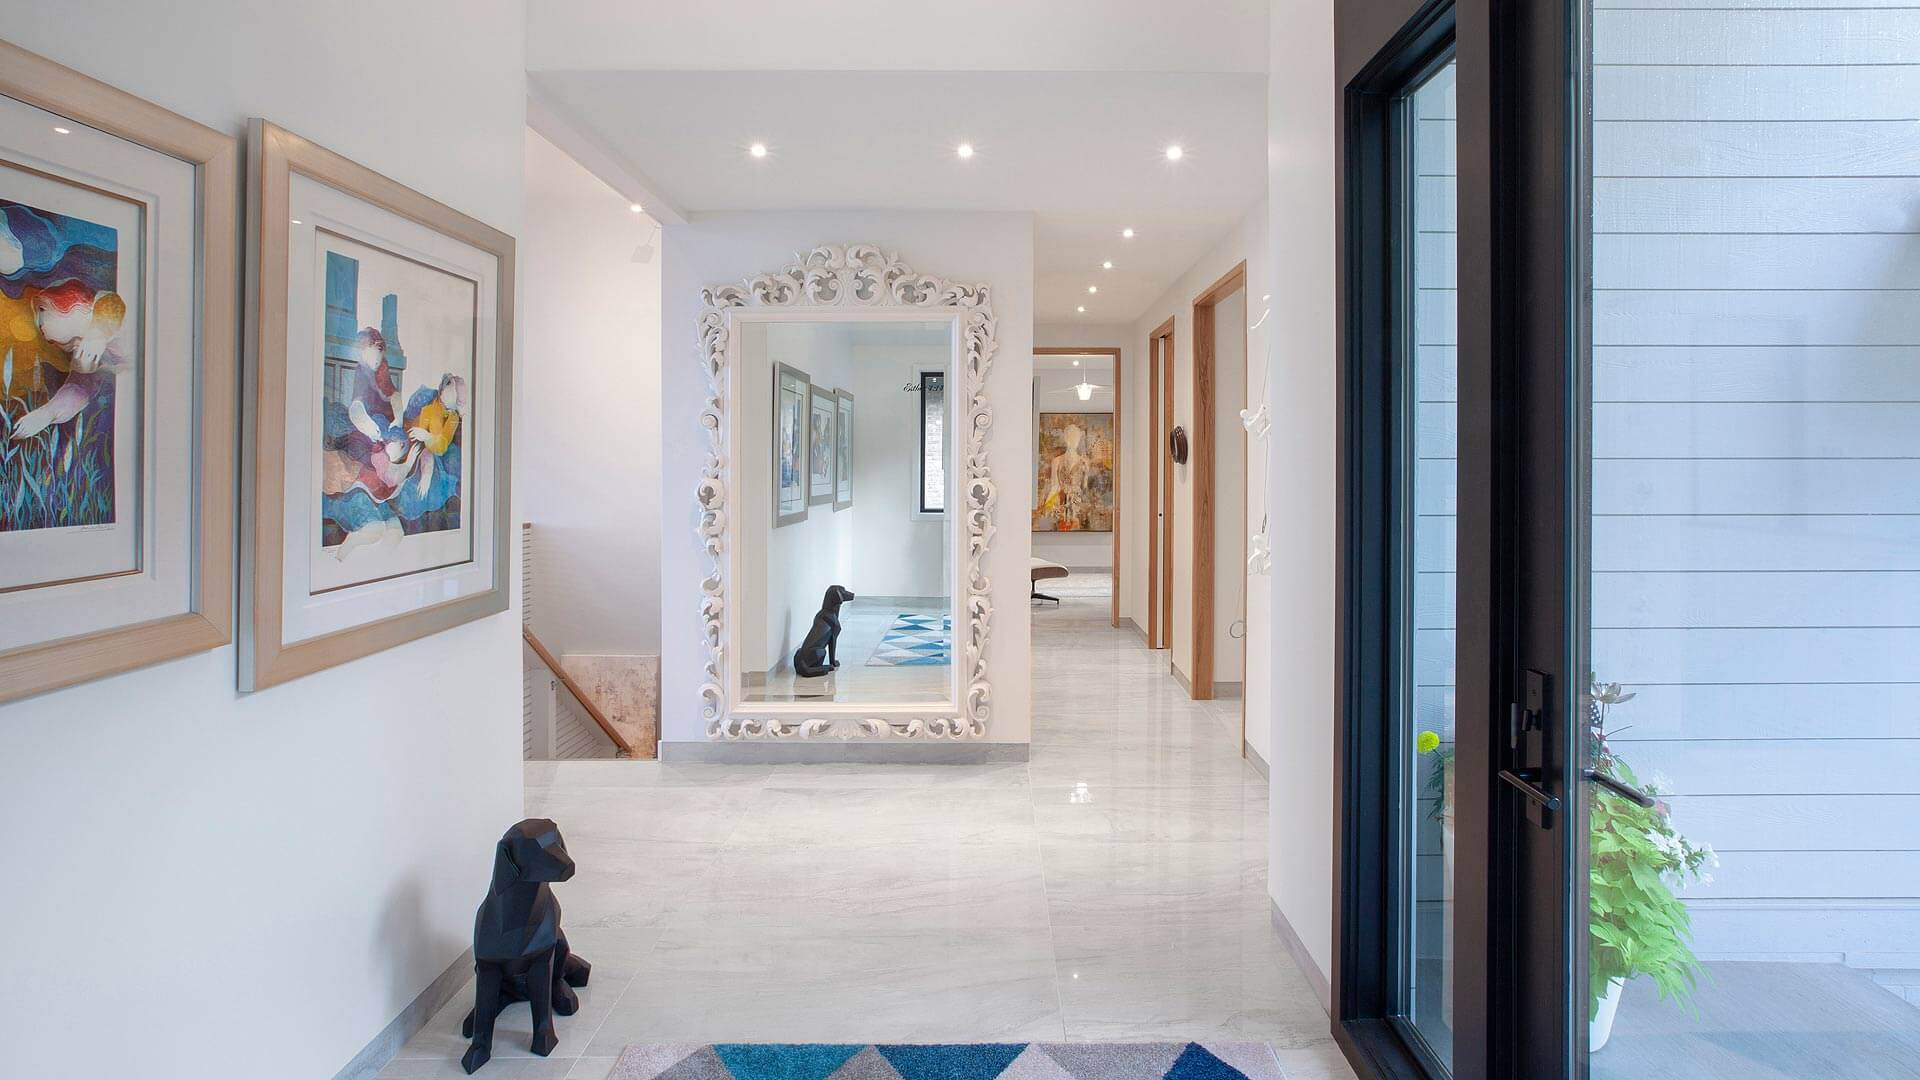 Entry foyer gallery provides openness, but privacy to living spaces from street view - colorful artwork greets visitors and introduces a modern twist on this 1980's lakeside cottage development - Modern Lakehouse Renovation - Clearwater